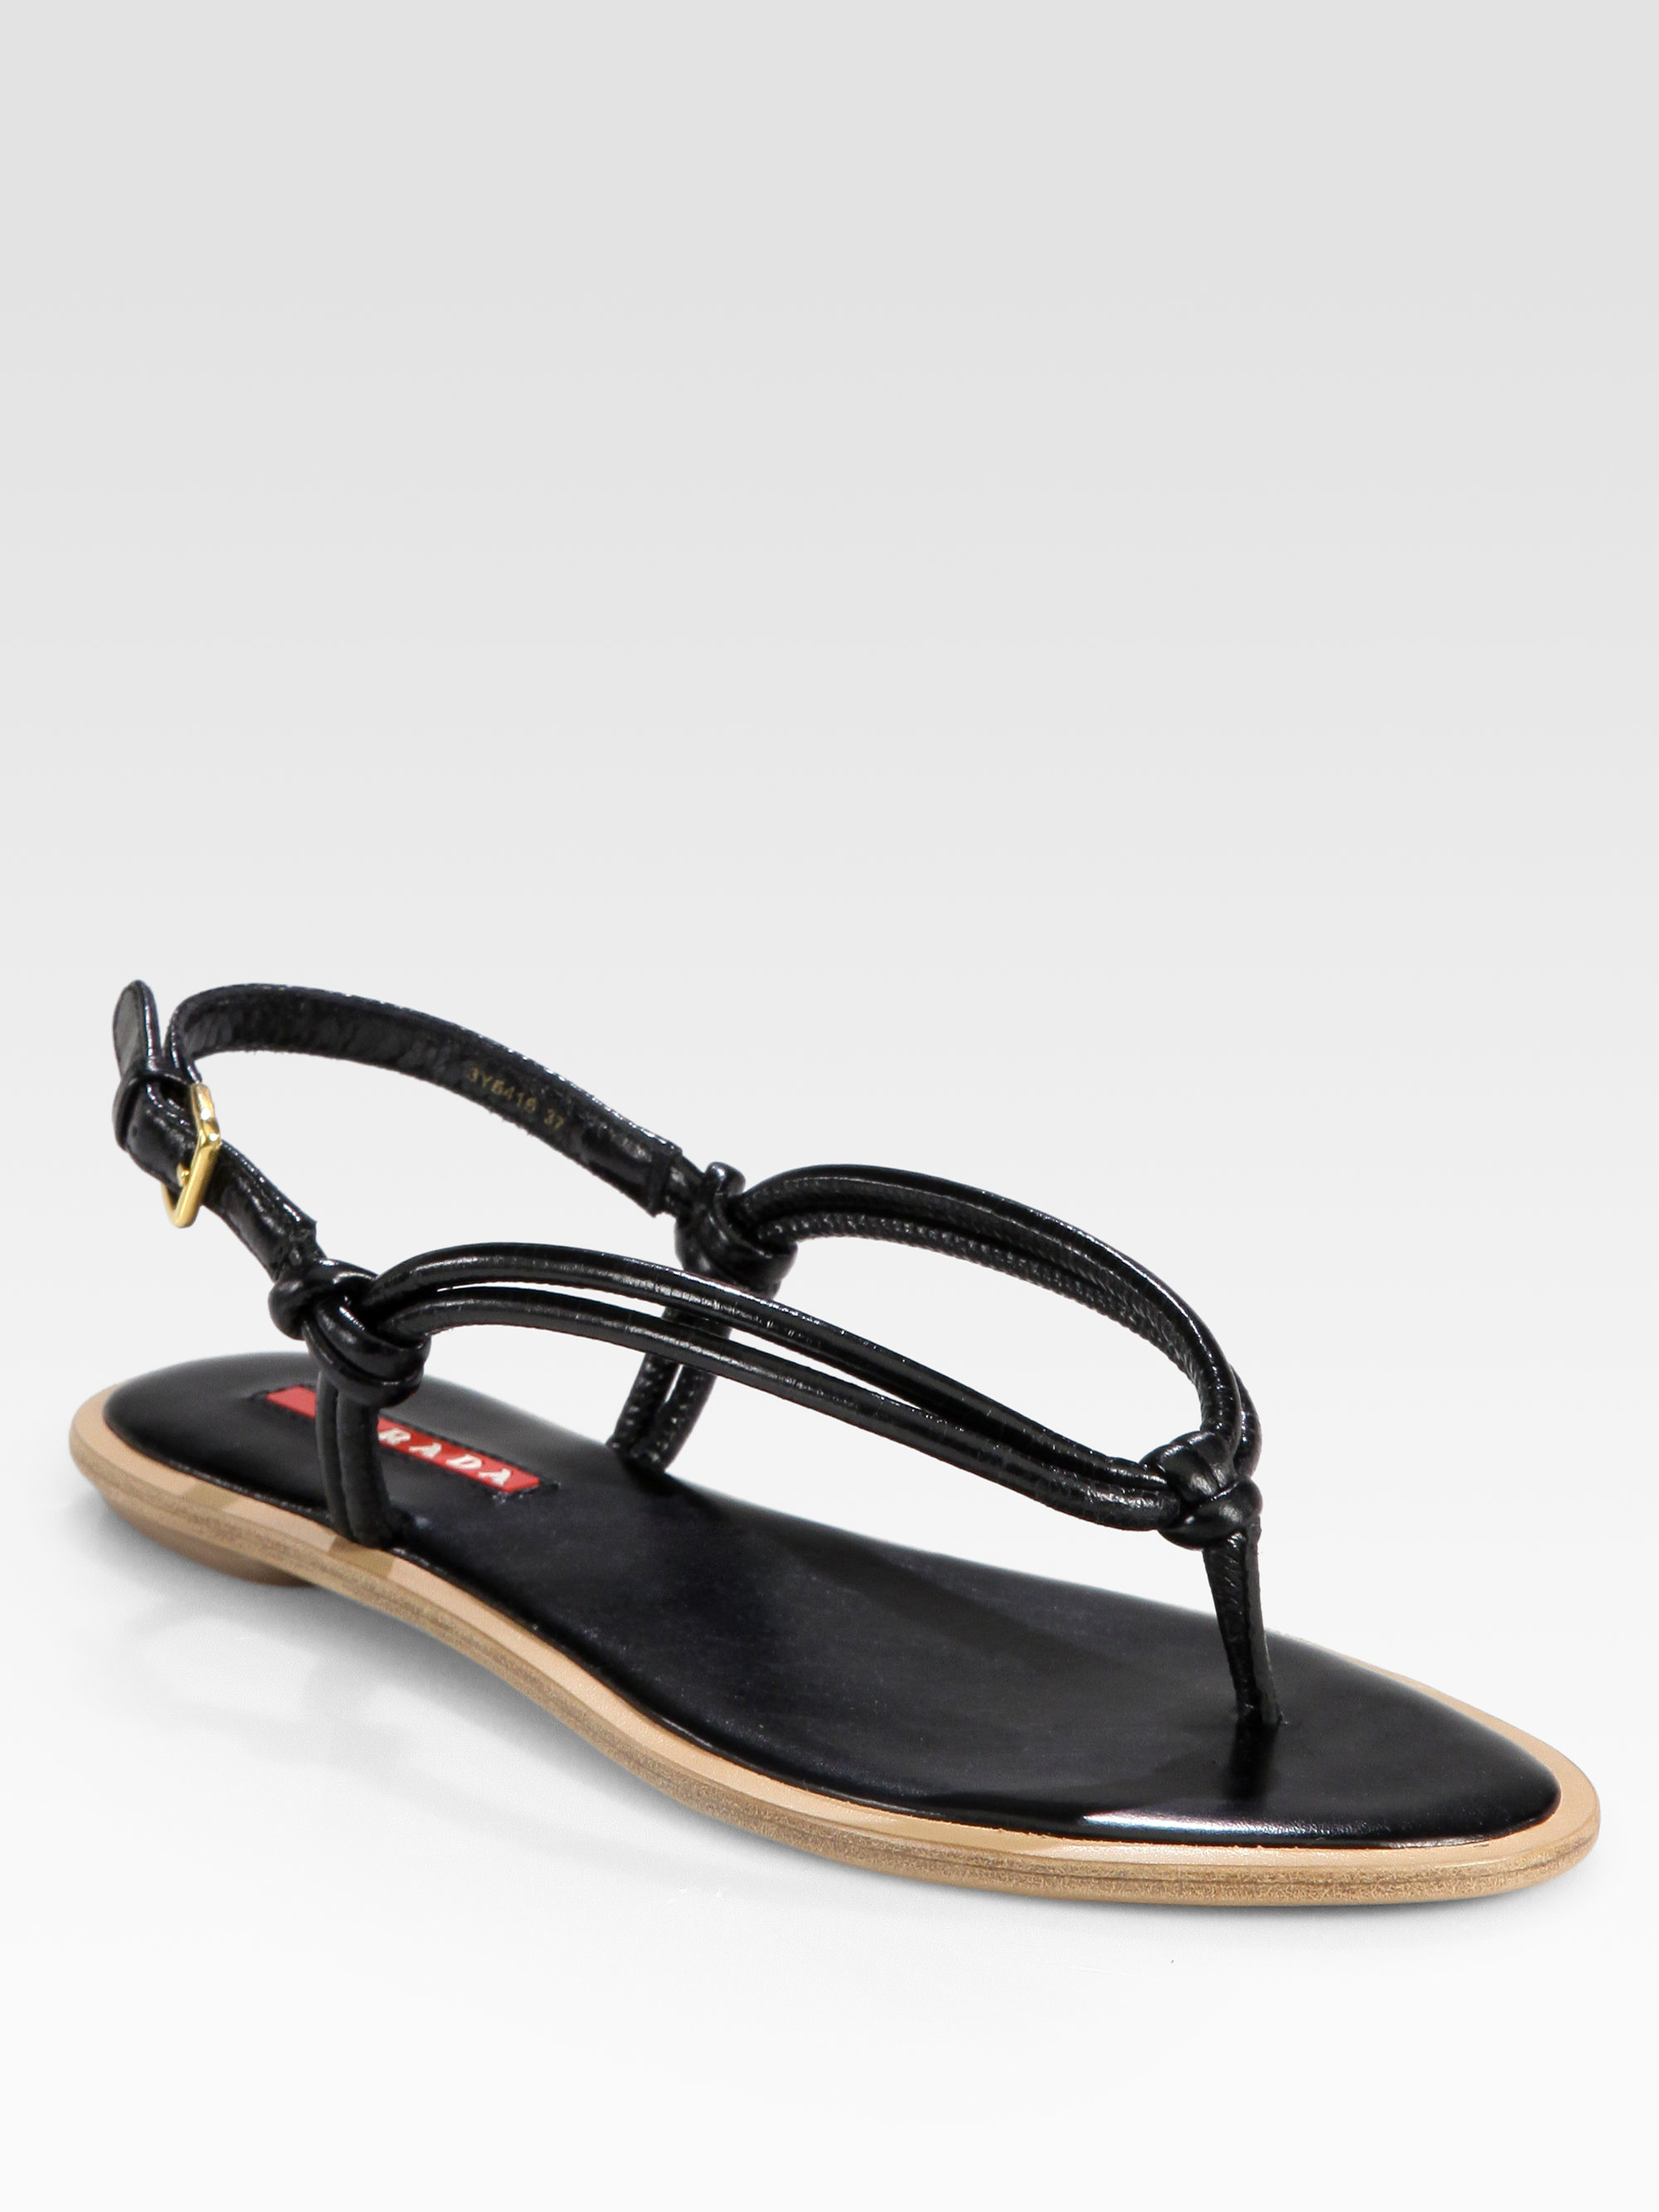 275074e661d3d3 Lyst - Prada Leather Knotted Thong Sandals in Black